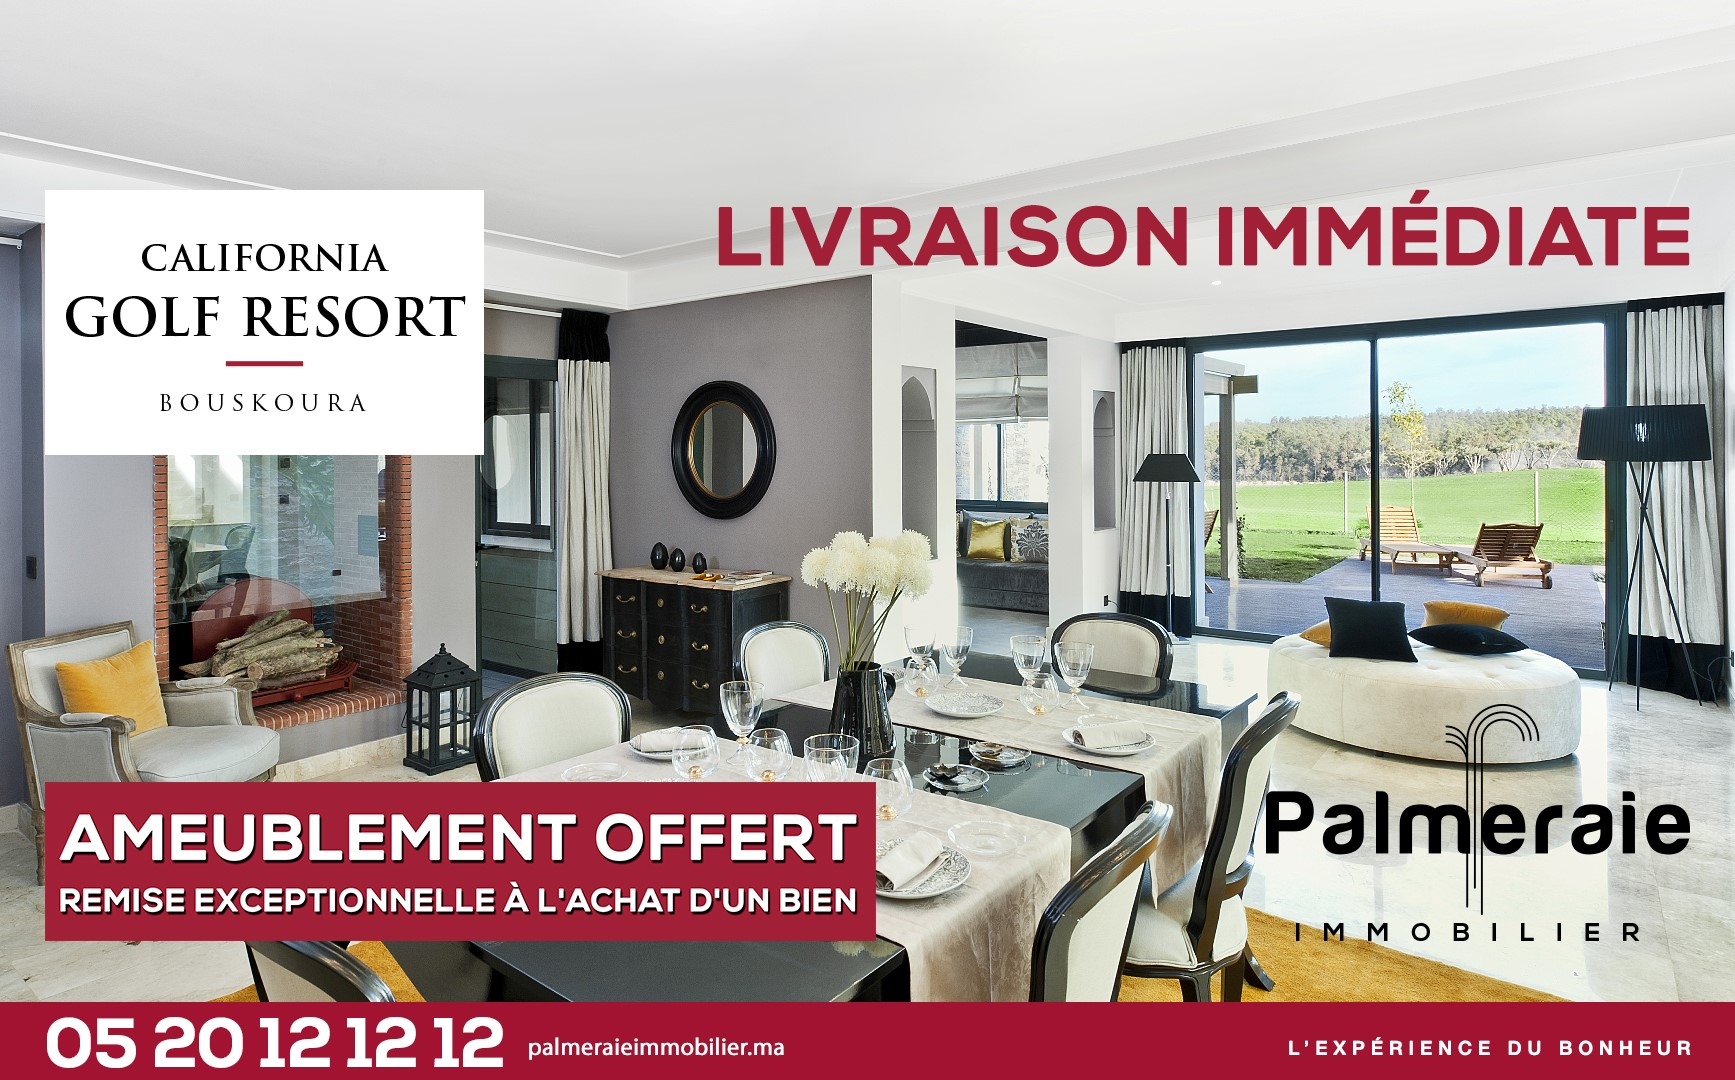 Palmeraie immobilier